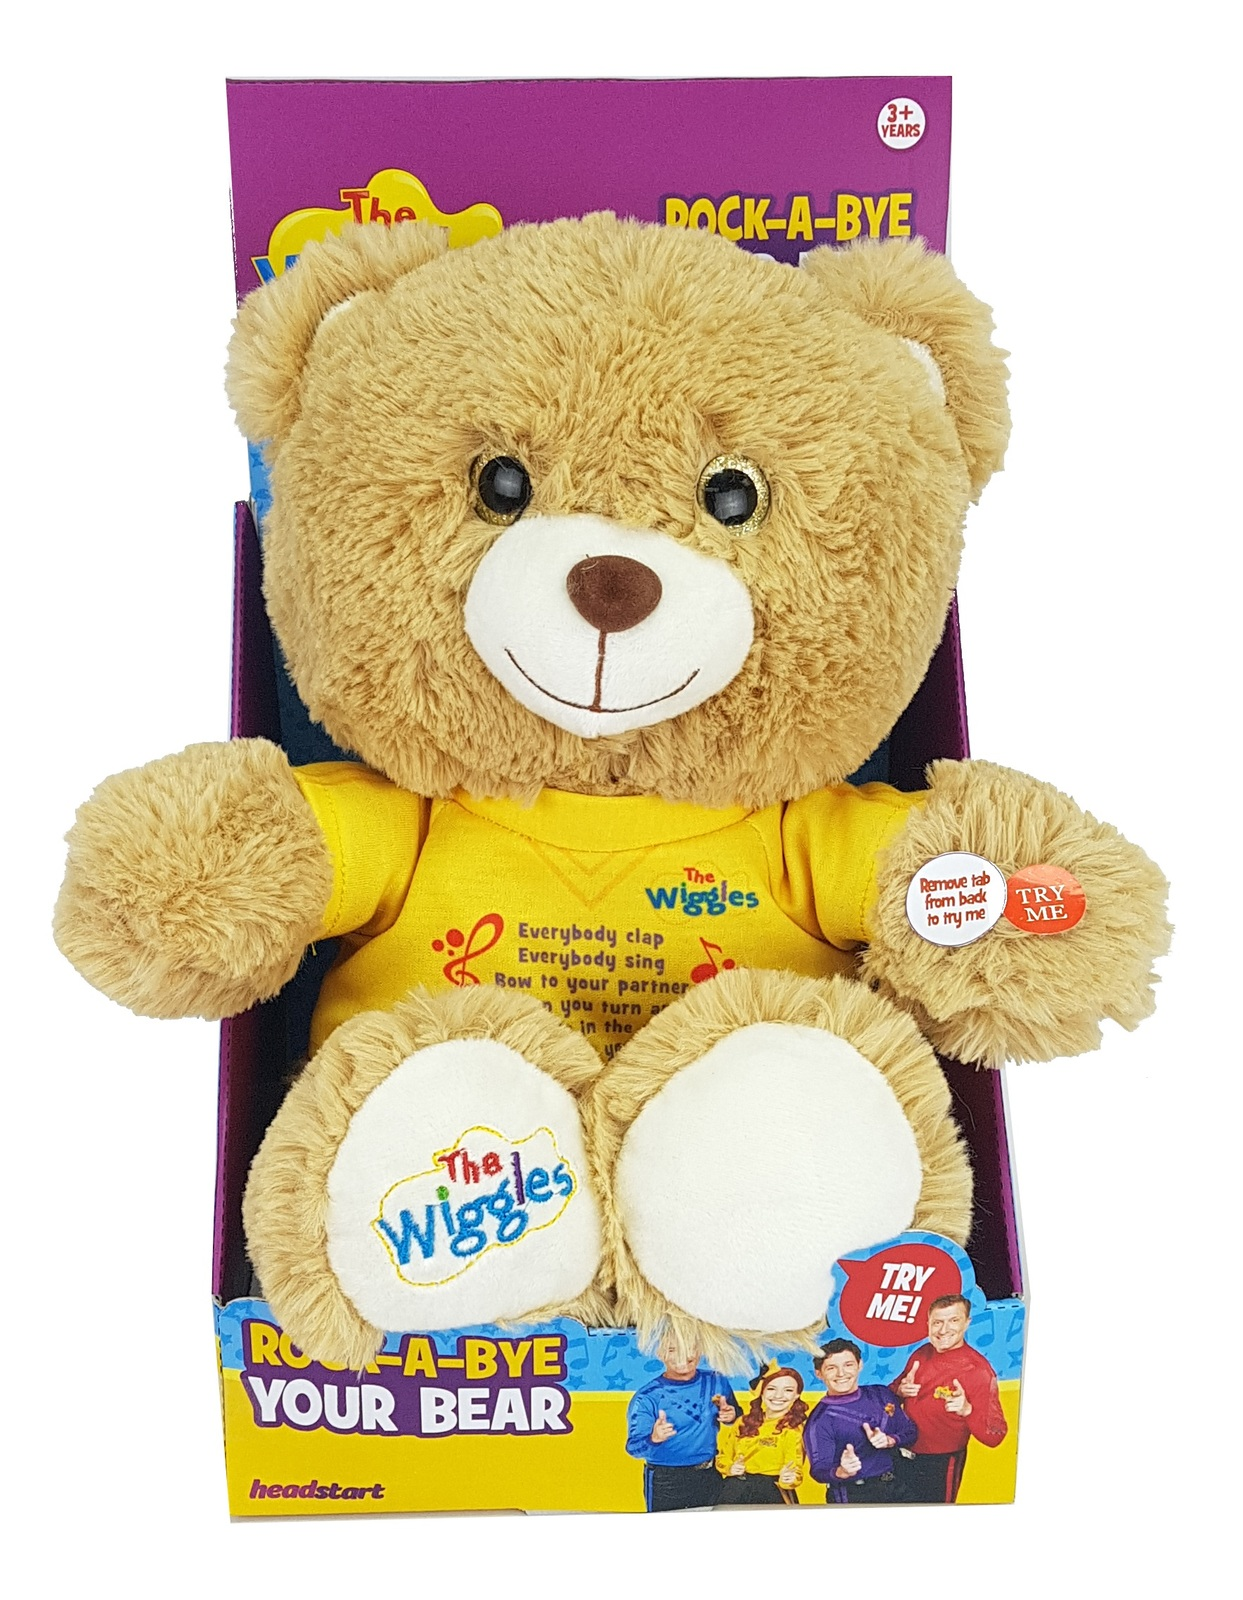 The Wiggles: Rock-A-Bye - Musical Bear image